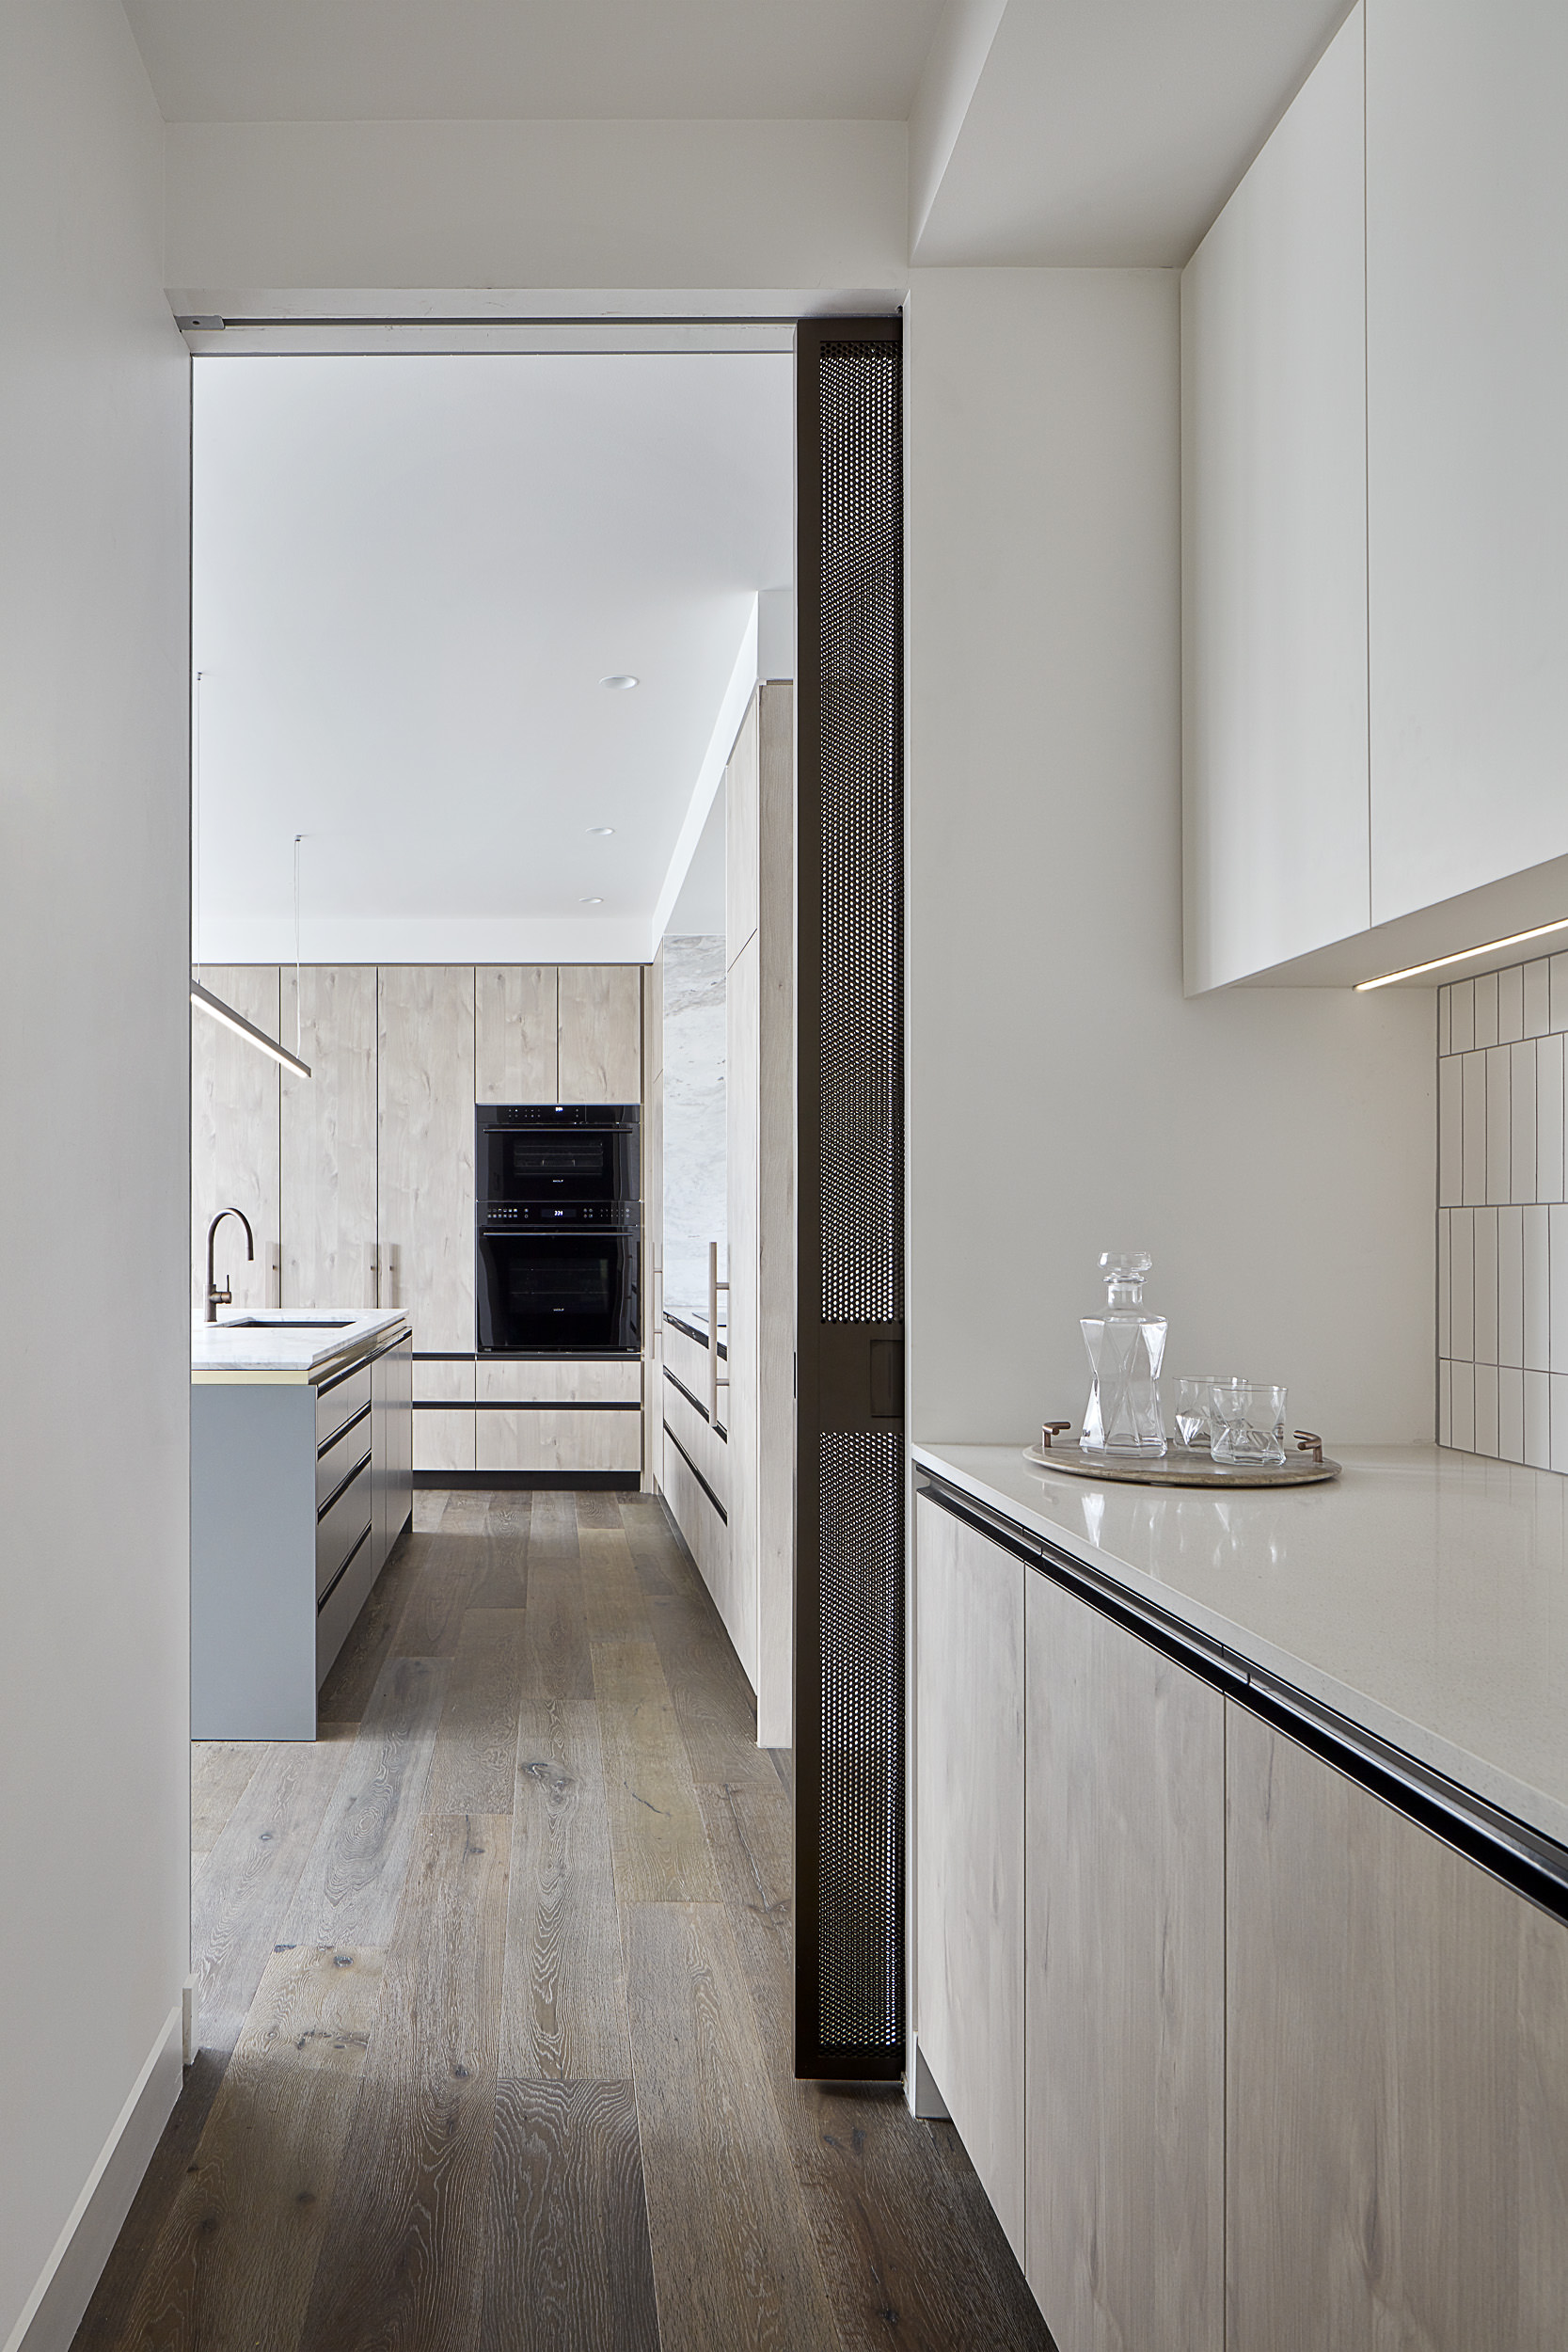 Brompton residential construction kitchen pantry